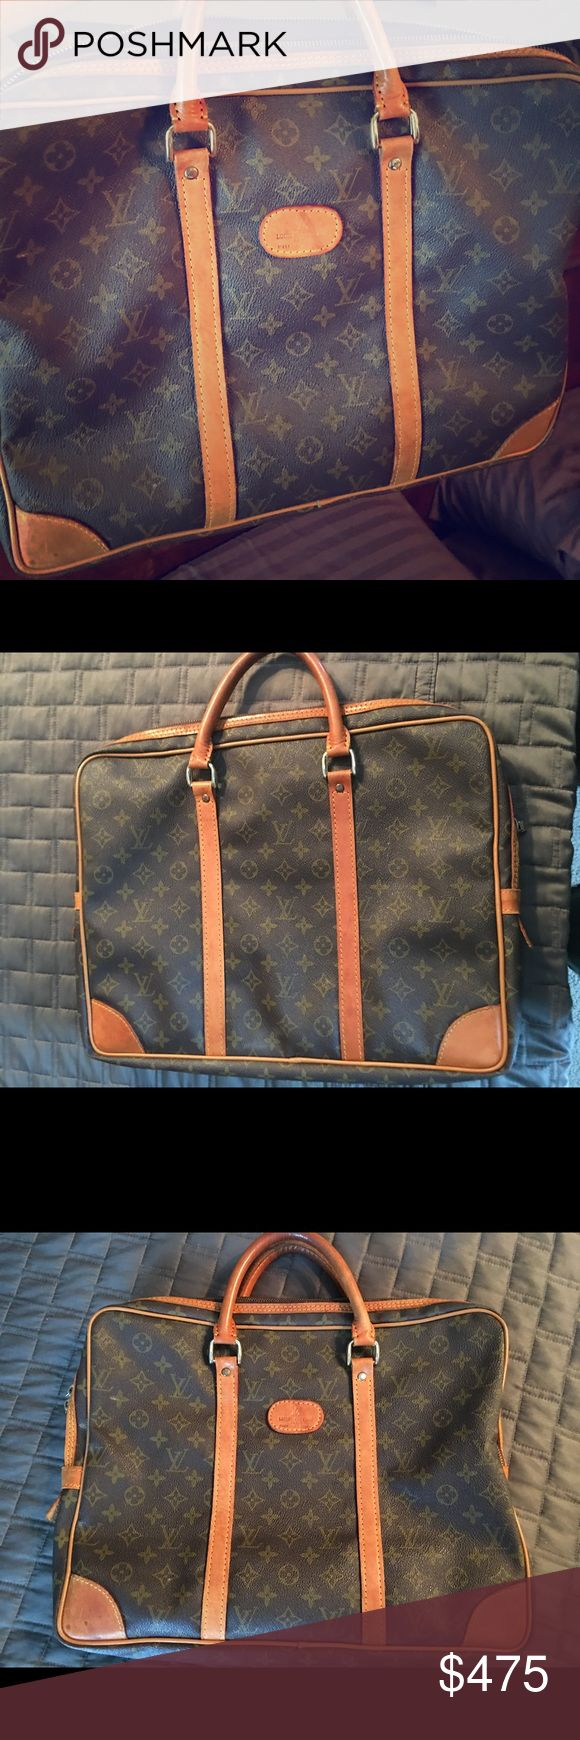 Louis Vuitton Bag. Authentic Beautiful Bag. Wonderful condition. Great buy. Louis Vuitton Bags Laptop Bags